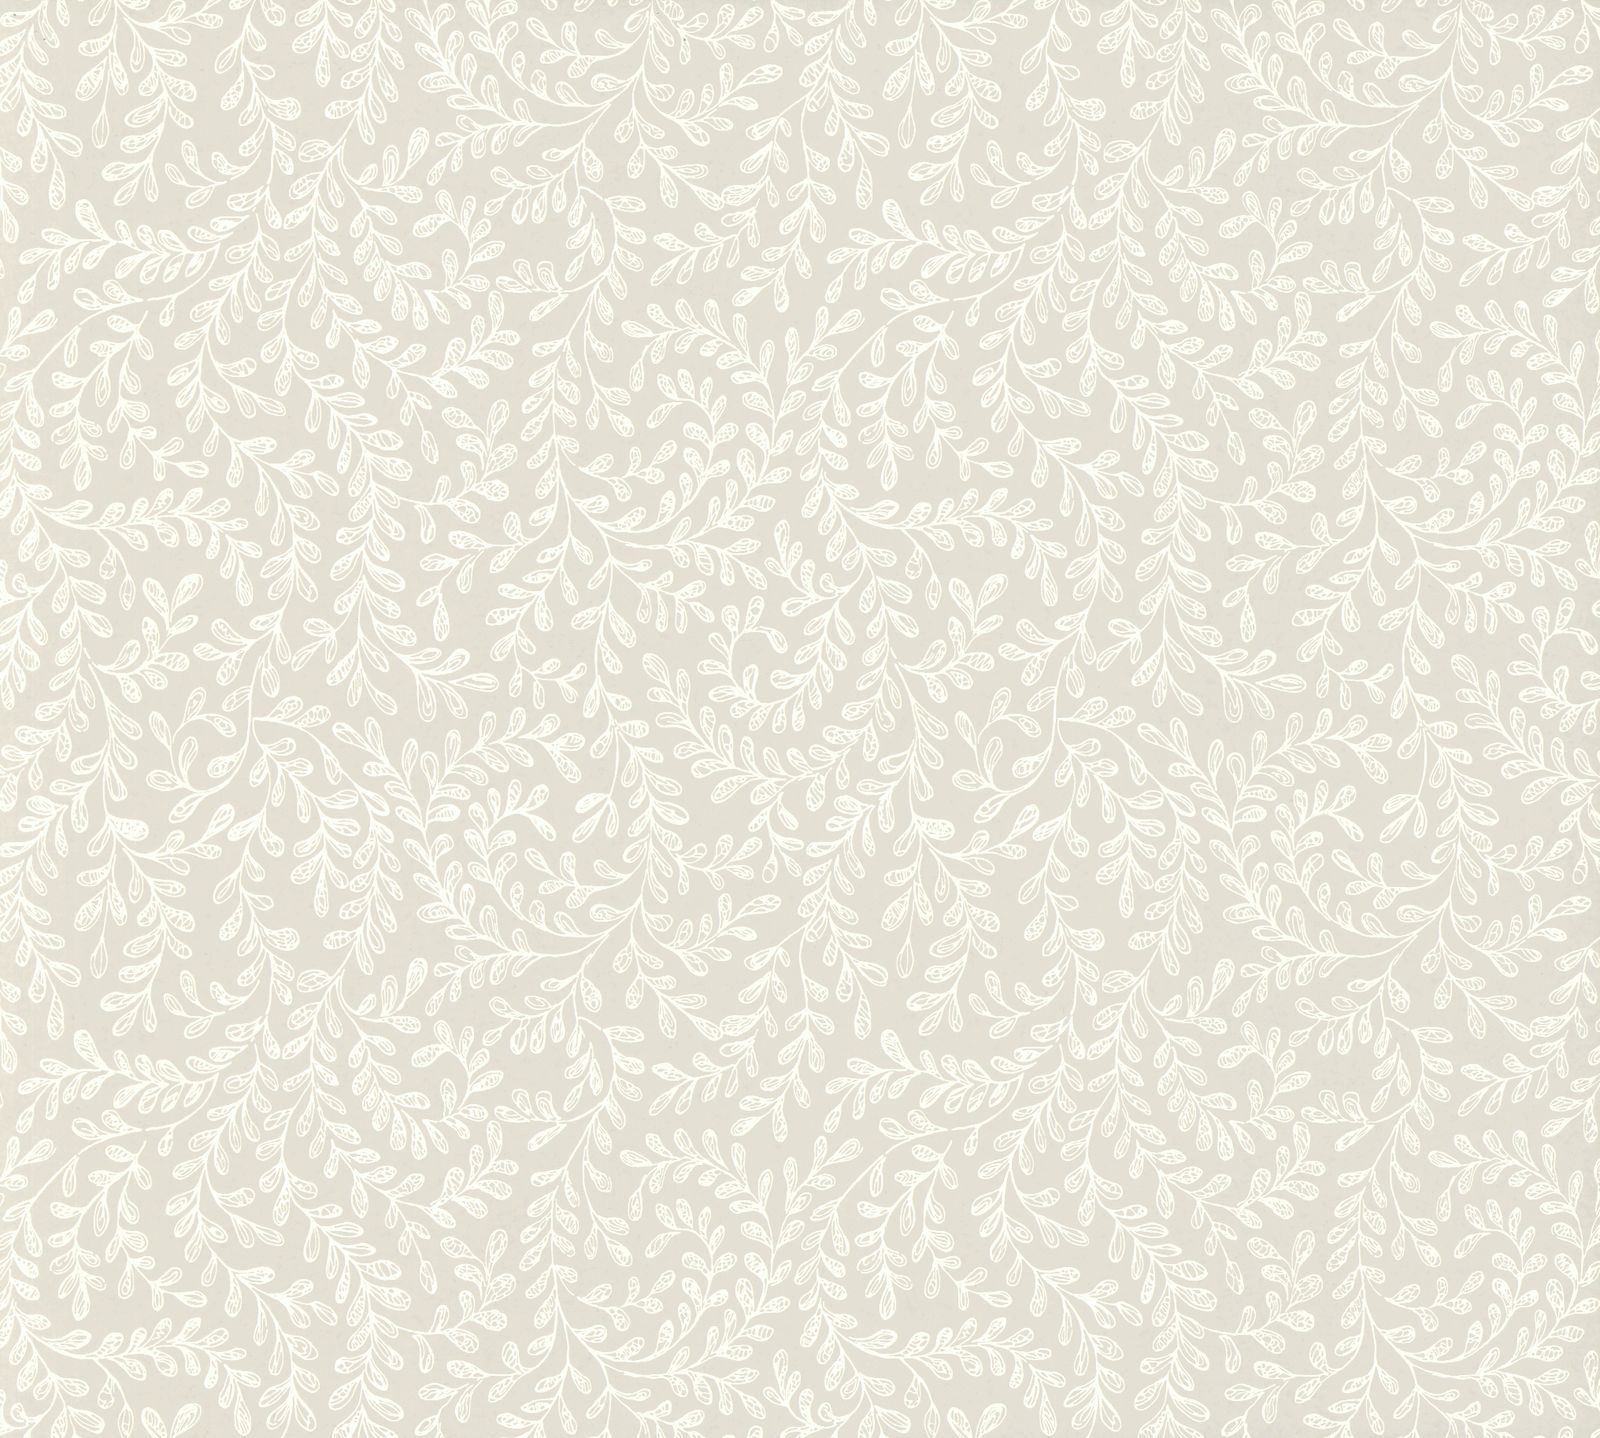 Tapetti 1838 Wallcoverings Audley harmaa 0,52x10,05 m